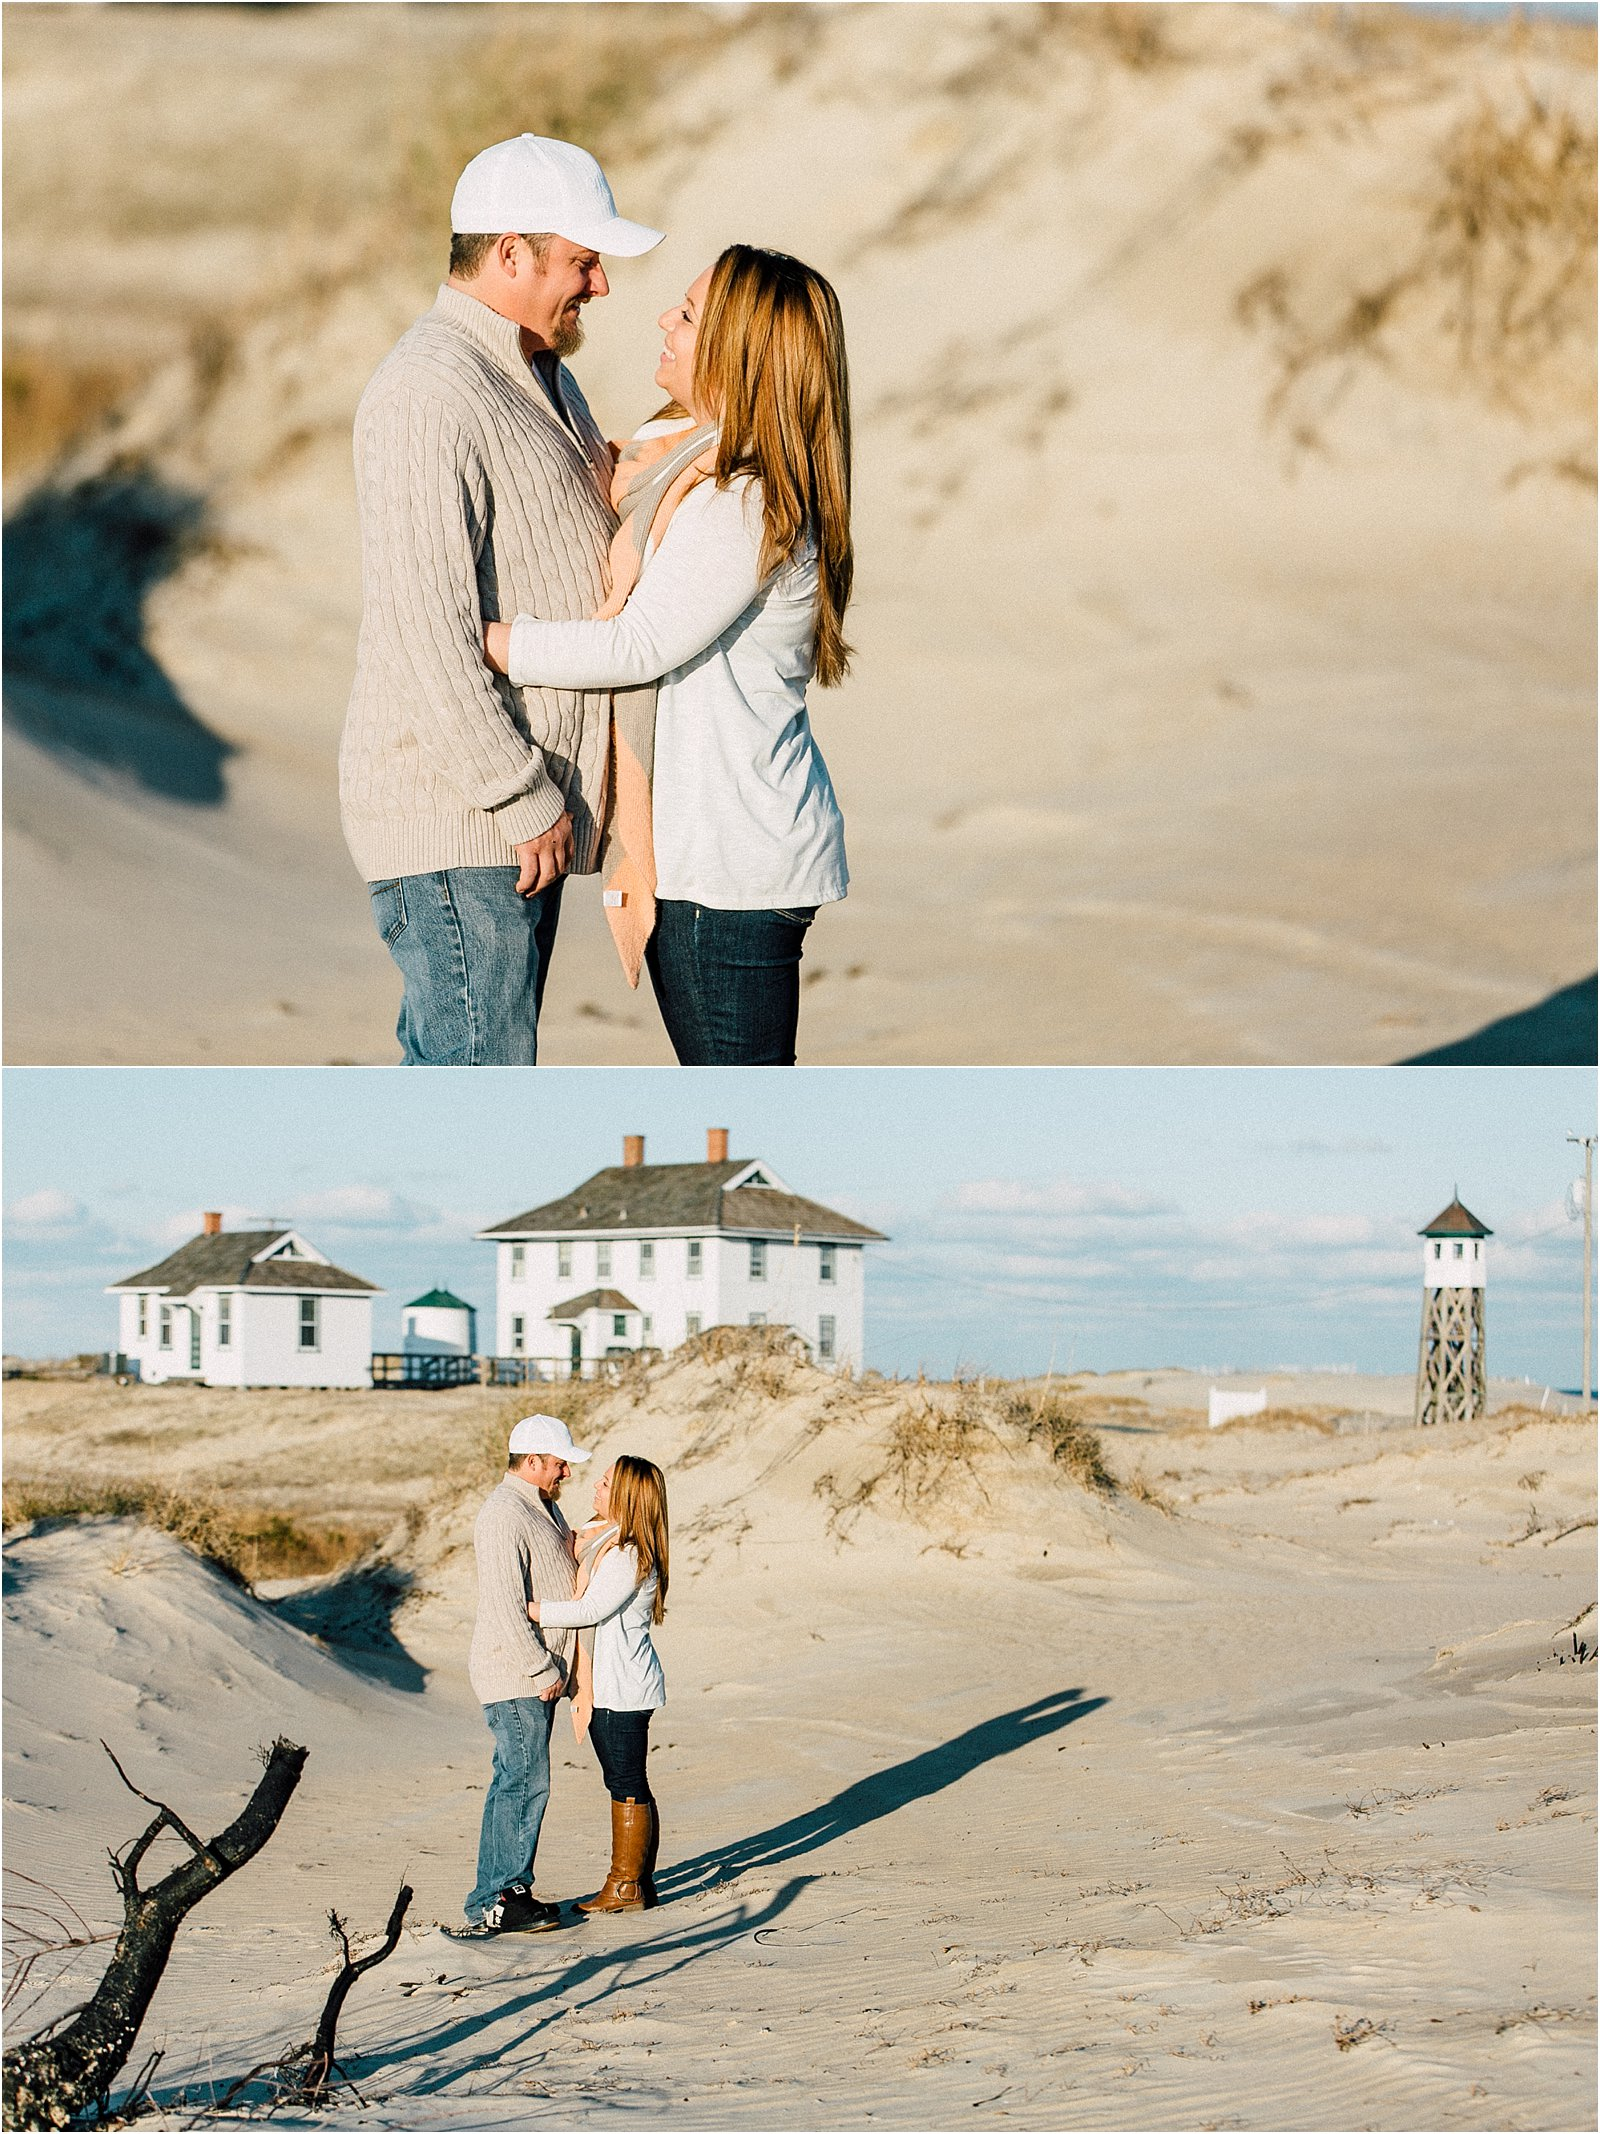 jessica_ryan_photography_pumpkin_patch_engagement_portraits_fall_october_engagements_virginia_beach_chesapeake_0306